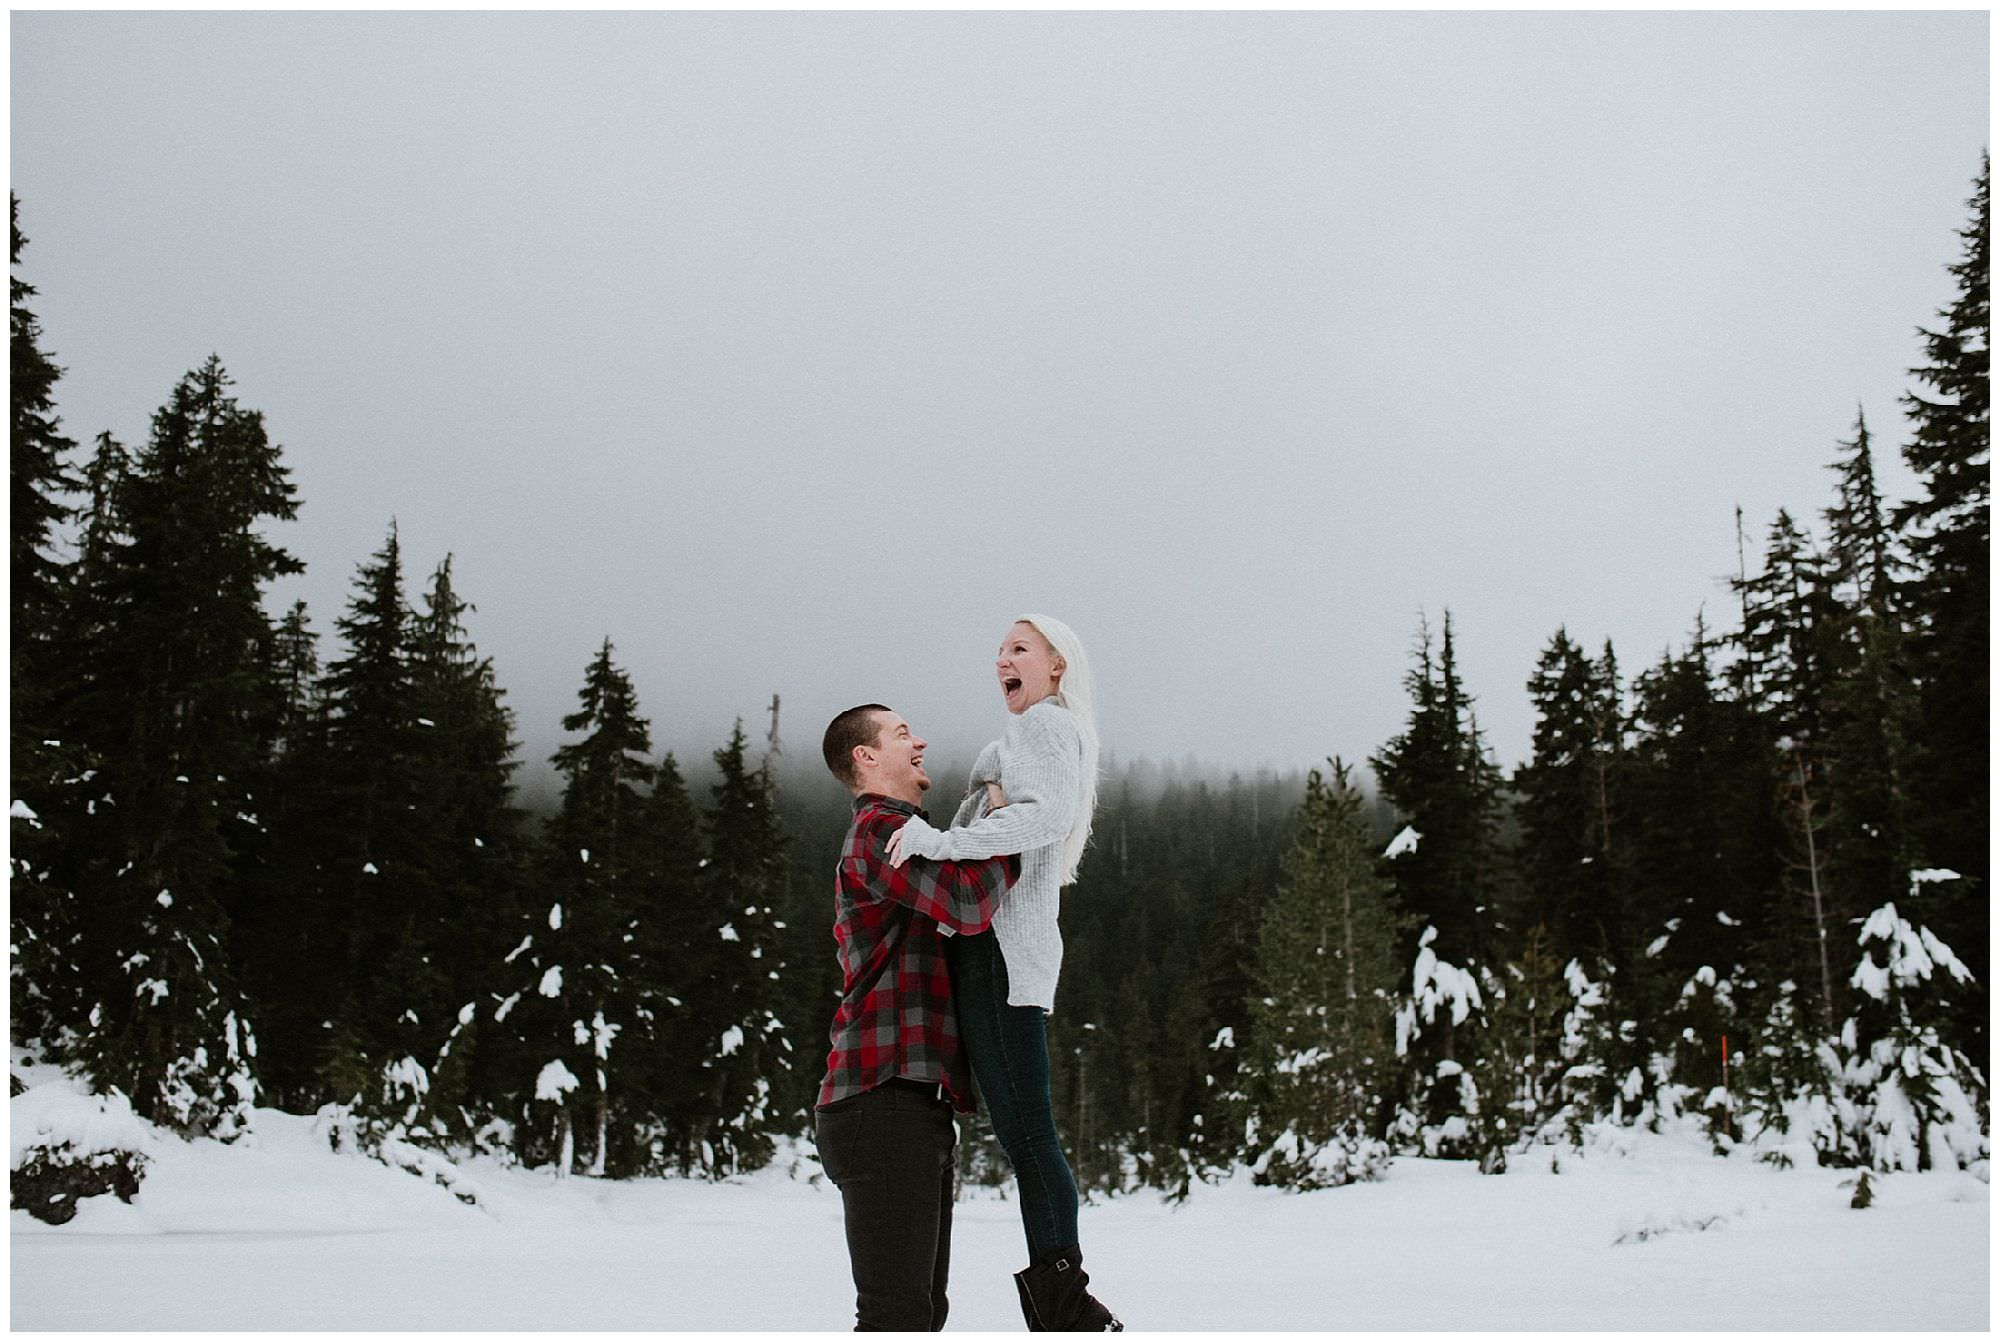 Ronnie Lee Hill Photography, Vancouver Photographer, Vancouver wedding photographer, bc wedding photographer, alberta wedding photographer, edmonton wedding photographer, adventure couples session, anniversary photoshoot, snowy engagement session, vancouver engagement photography, cuddly winter photo session, cypress mountain engagement shoot, winter engagement session